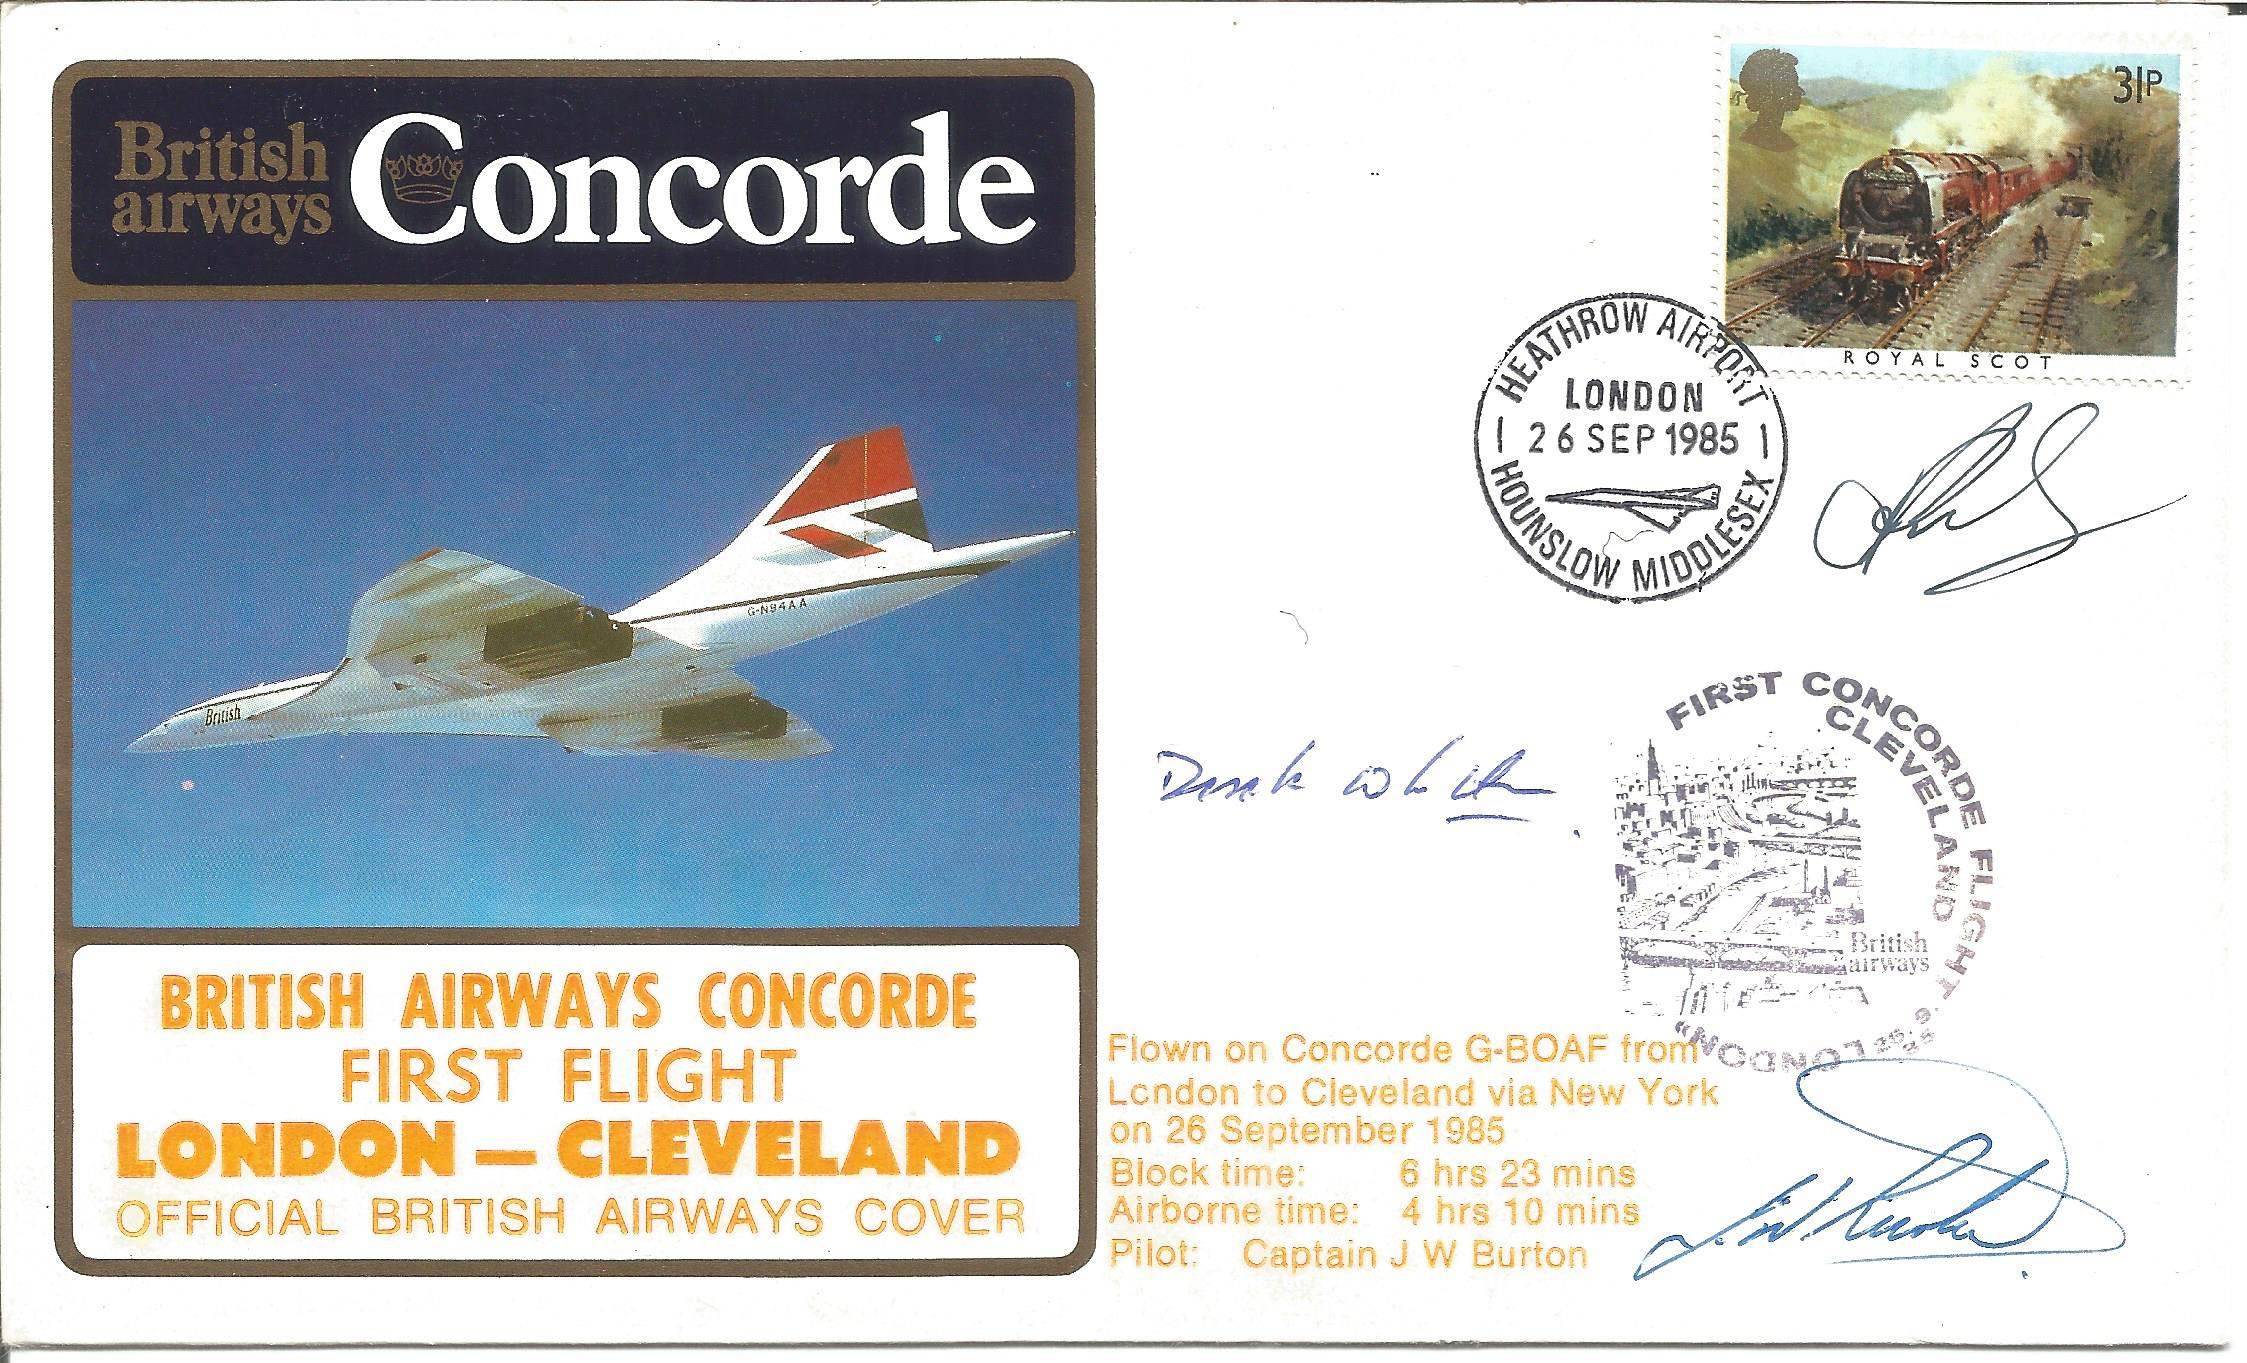 Rare Official British Airways' Concorde 1st Flight- London- Cleveland Flown Cover Signed by Three